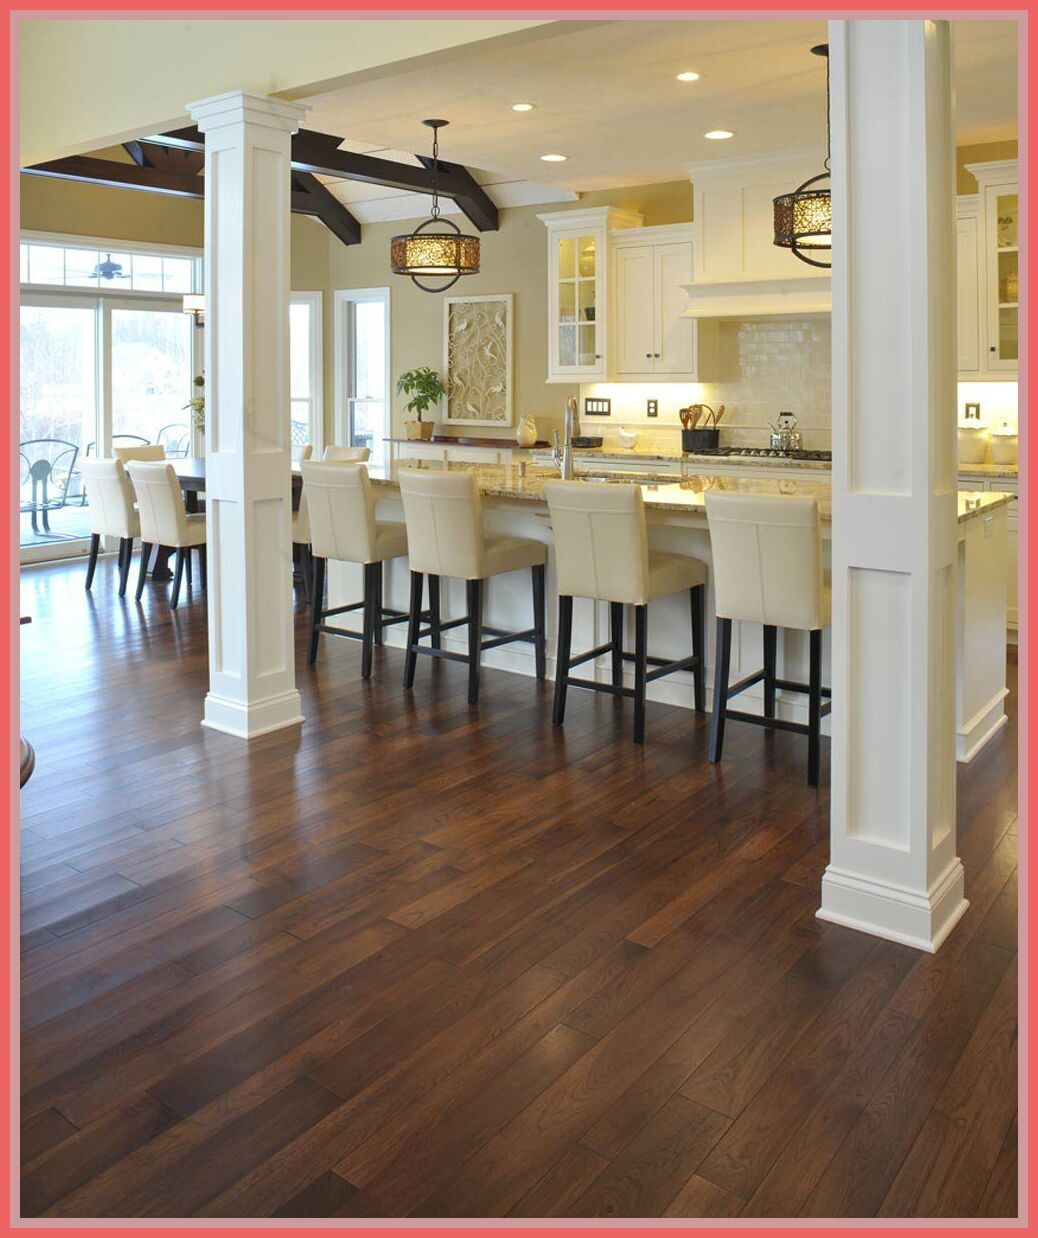 89 Reference Of Flooring Wood Tile Distressed In 2020 House Flooring Hickory Hardwood Floors Wood Floors Wide Plank